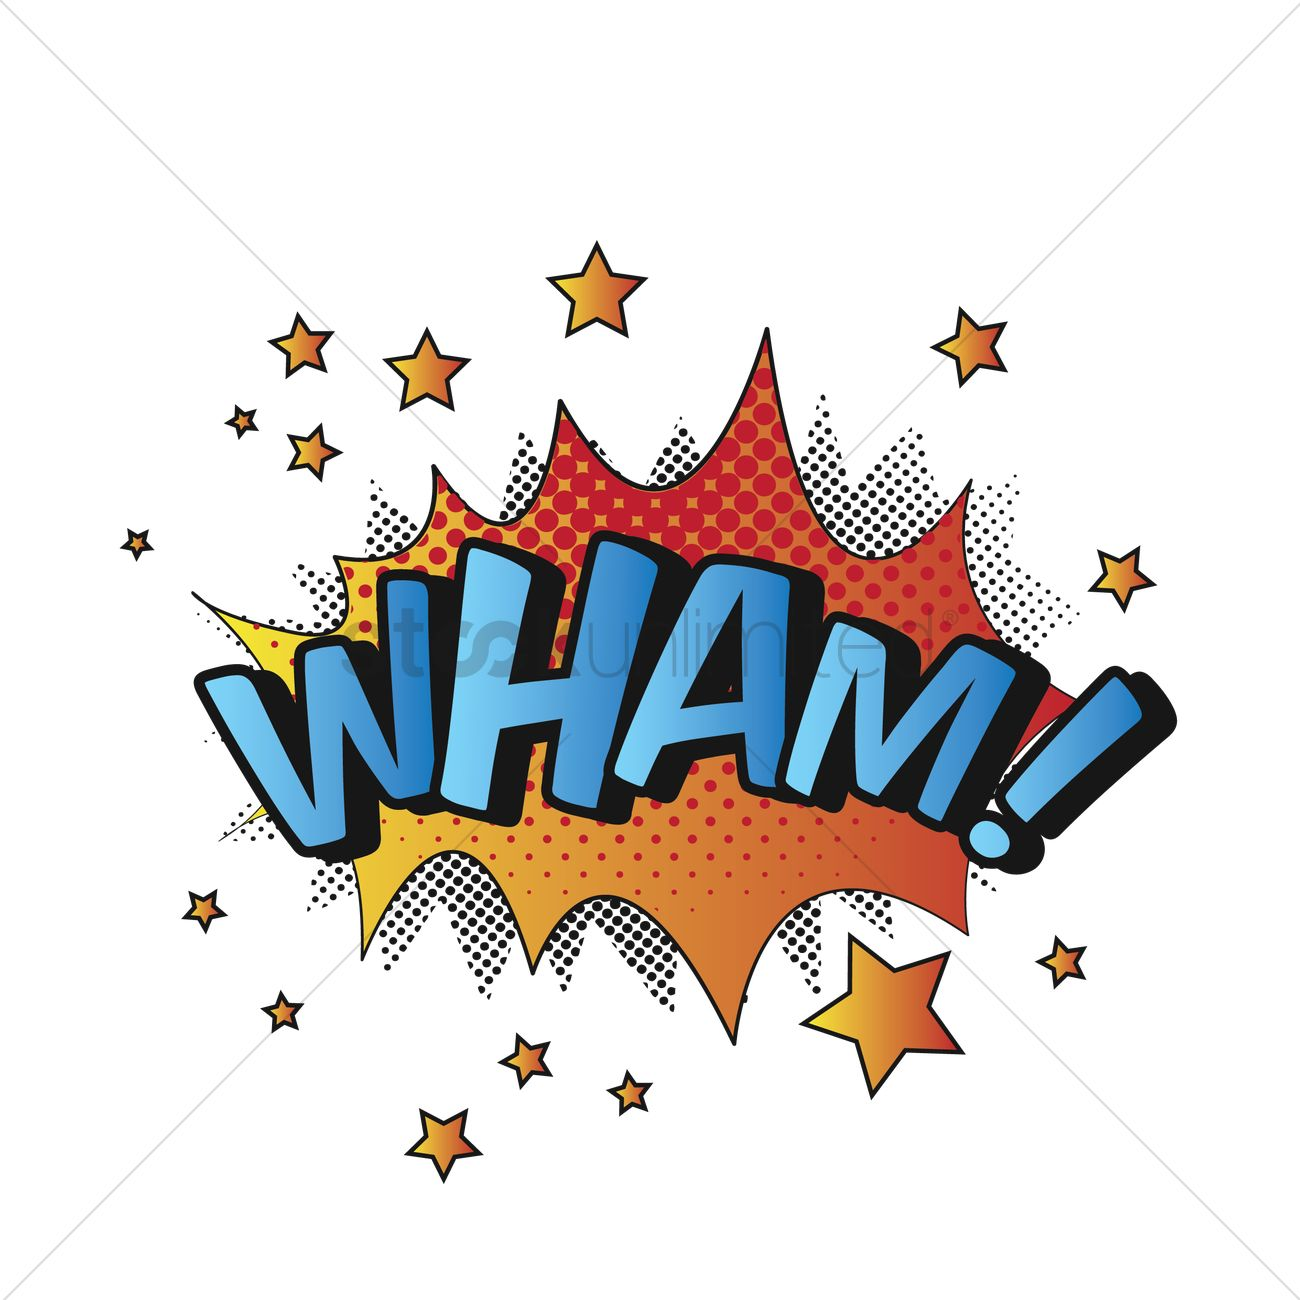 free comic effect wham vector image 1607157 stockunlimited